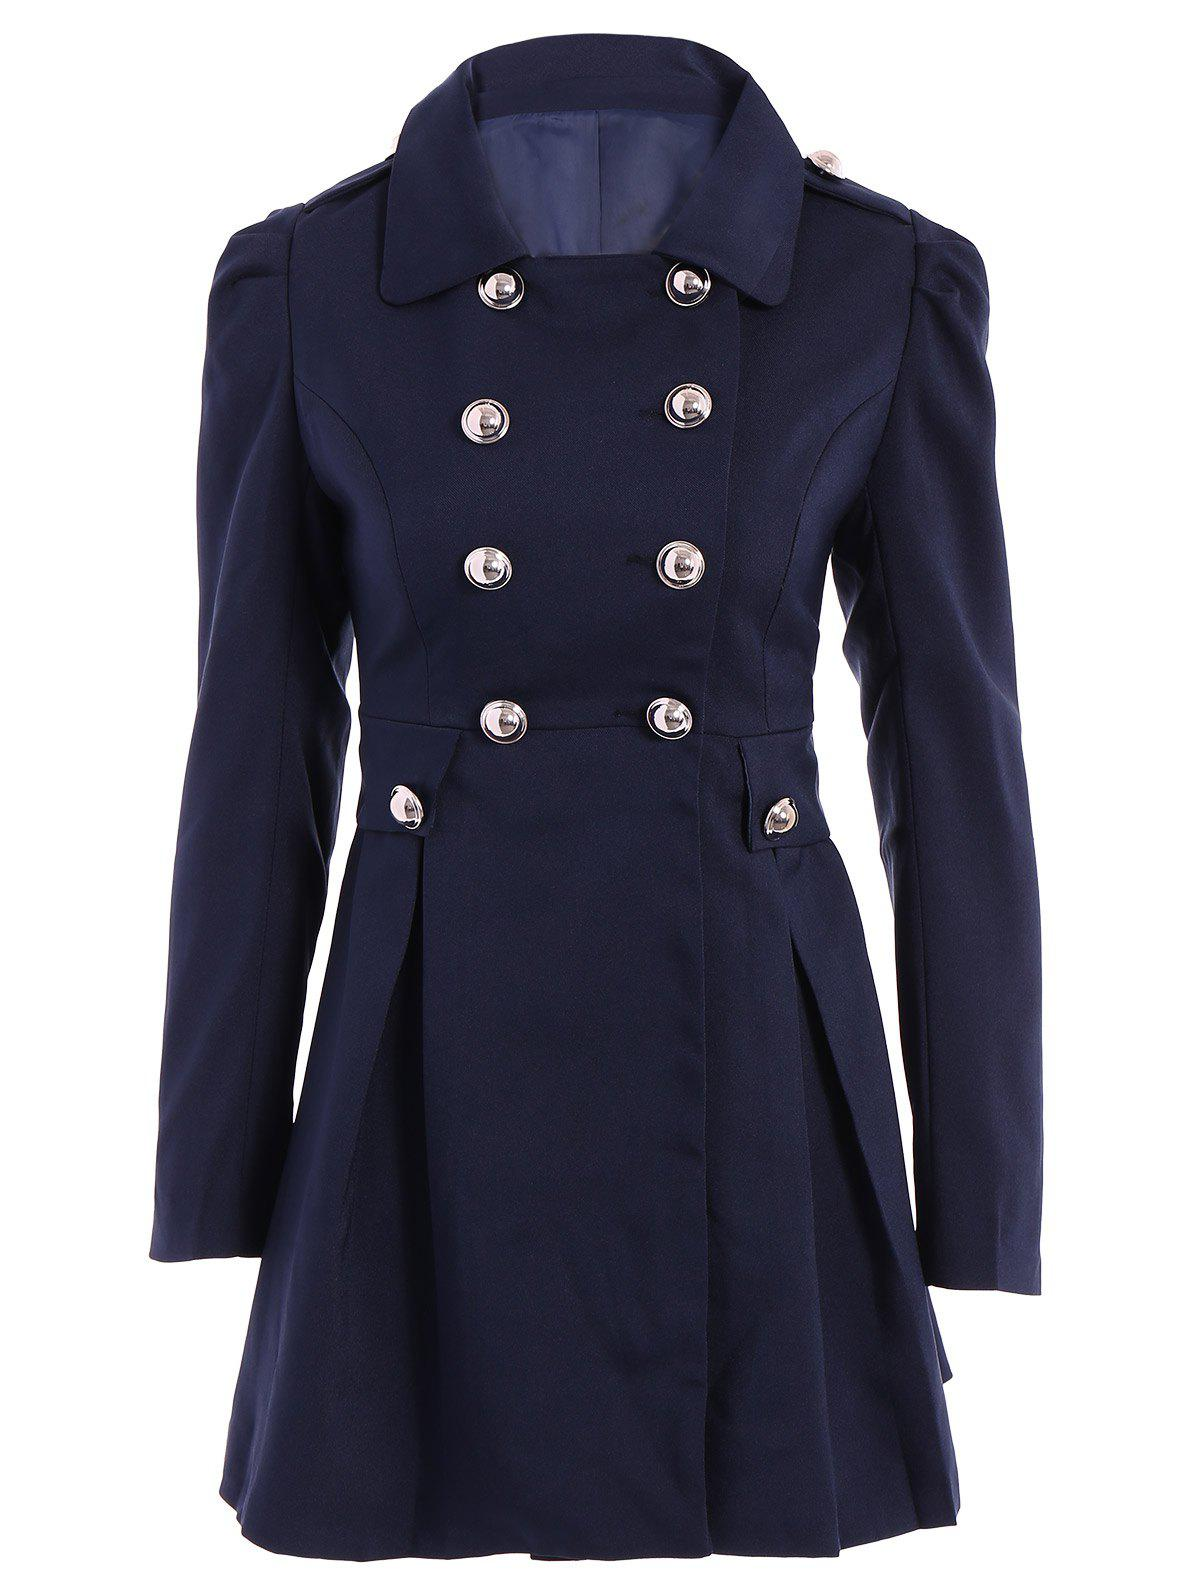 Ladylike Turn-Down Collar Solid Color Epaulet Puff Sleeves Ruffled Double-Breasted Trench Coat - PURPLISH BLUE M